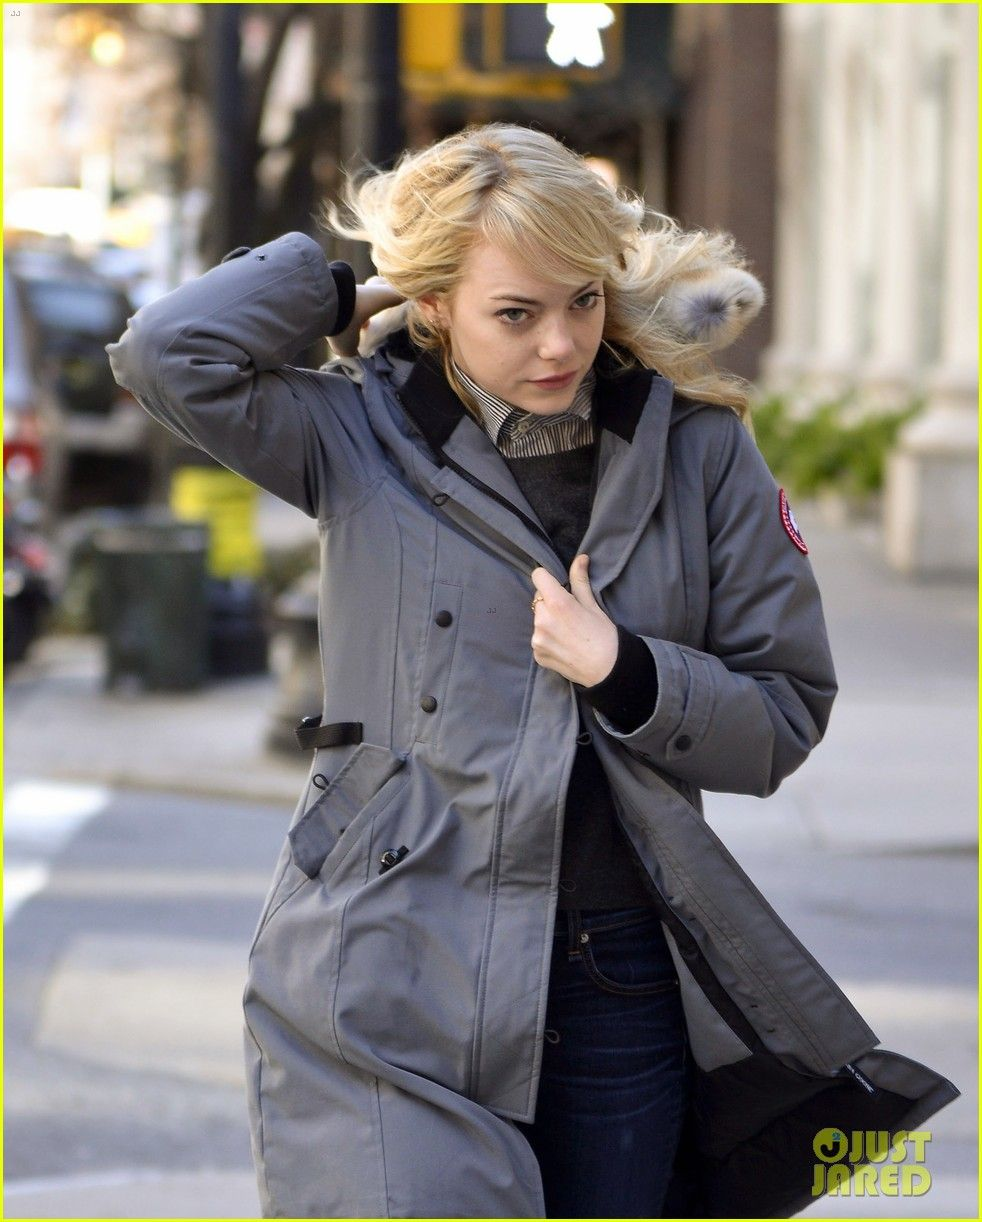 Emma Stone in the Kensington Parka from Canada Goose. Long and slim-fi tting